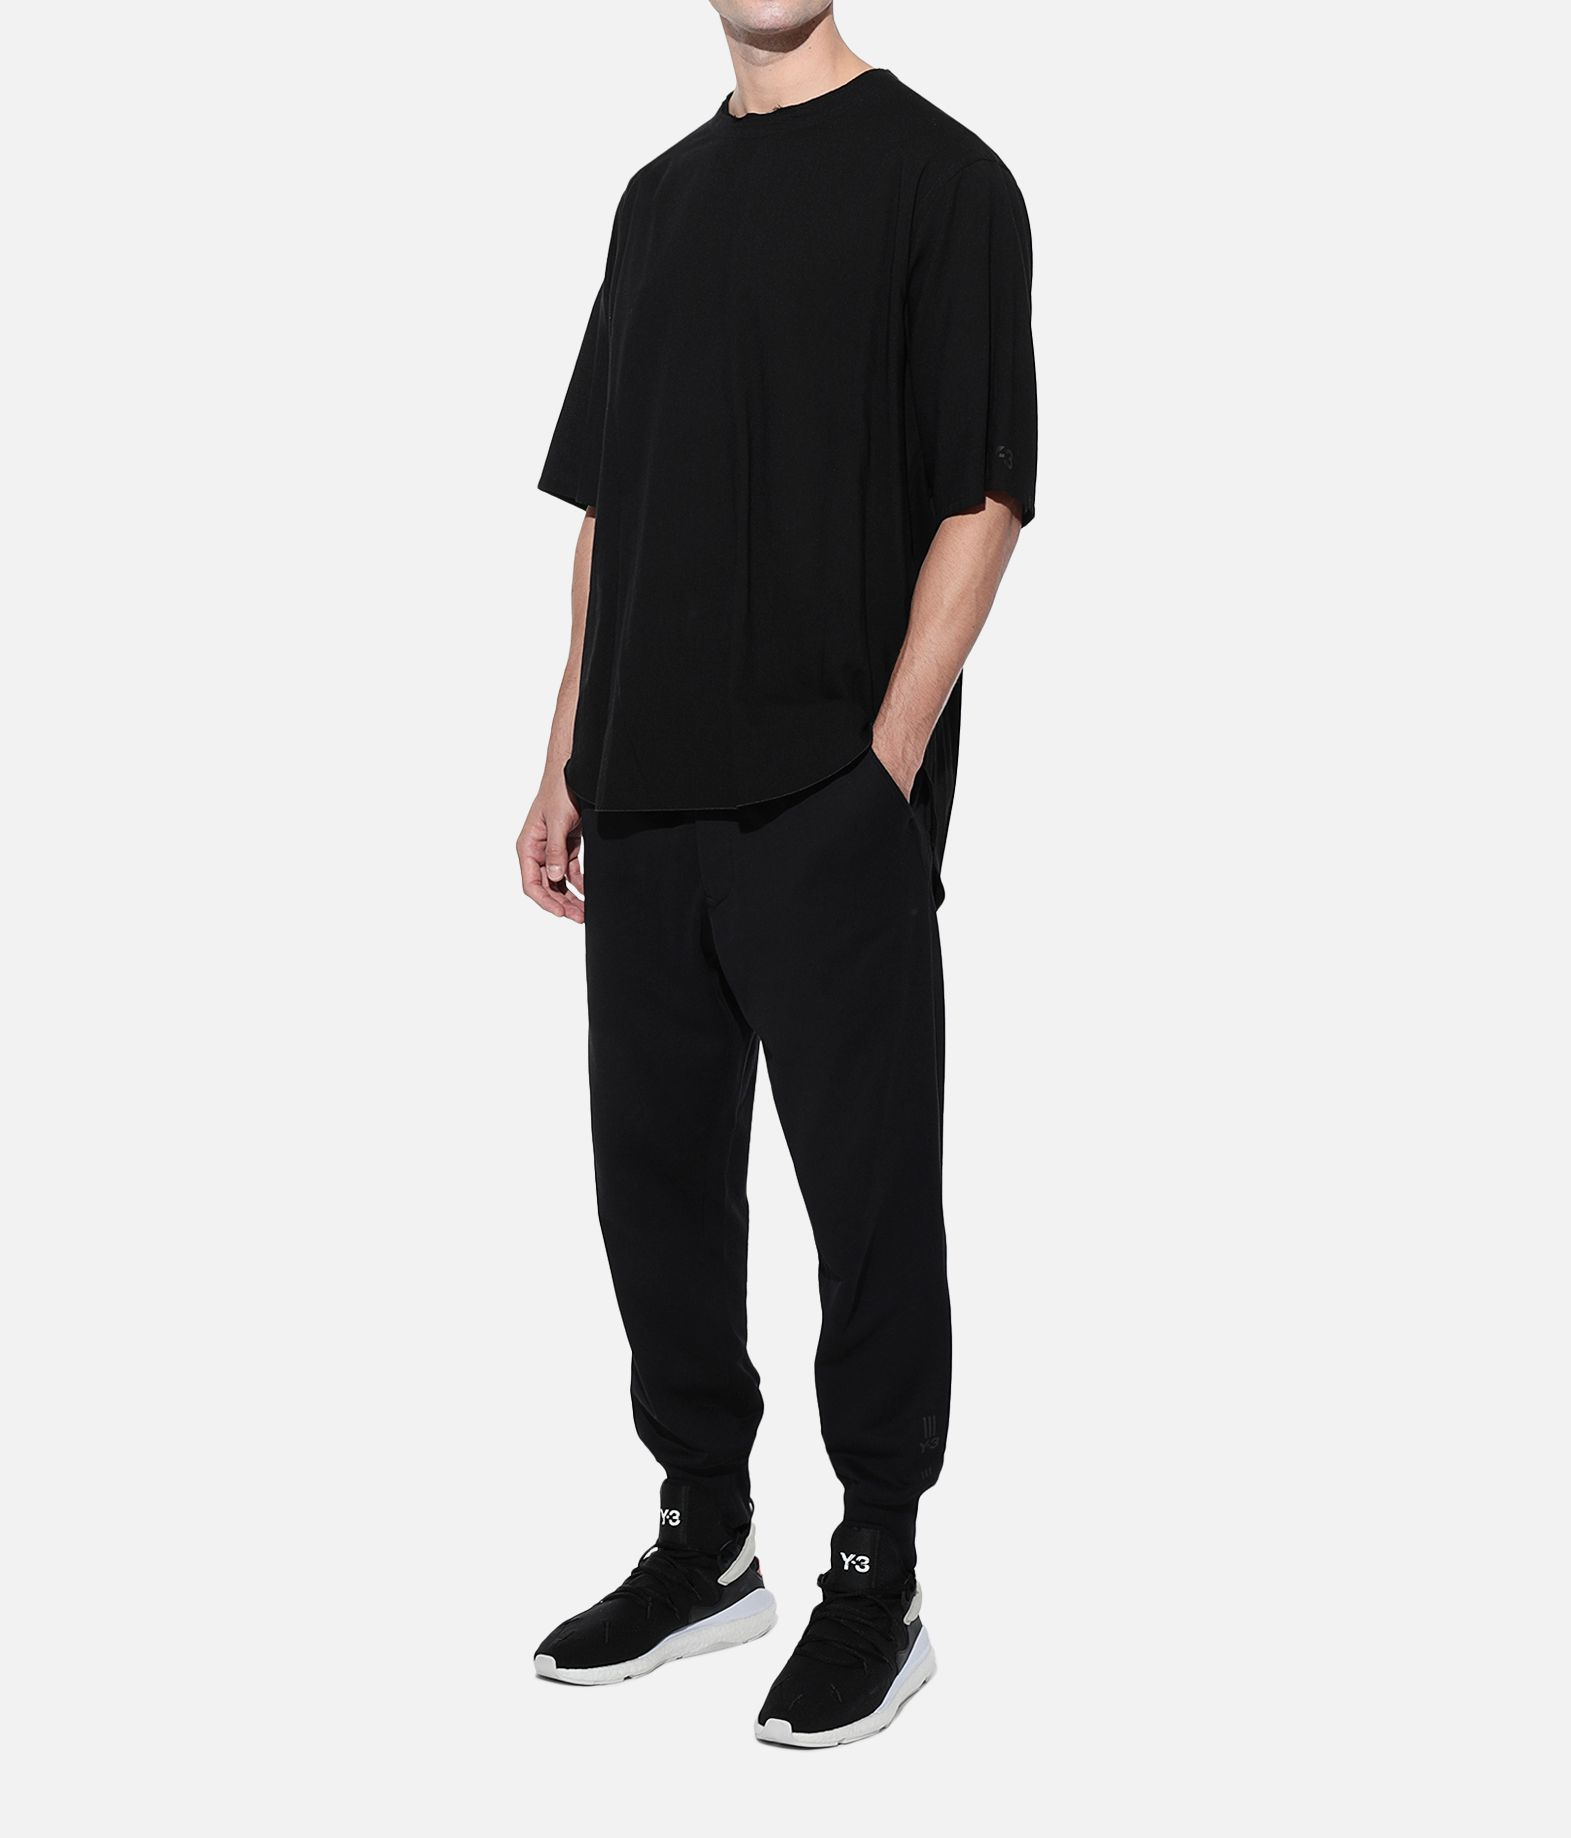 Y-3 Y-3 Long Tee  Short sleeve t-shirt Man a